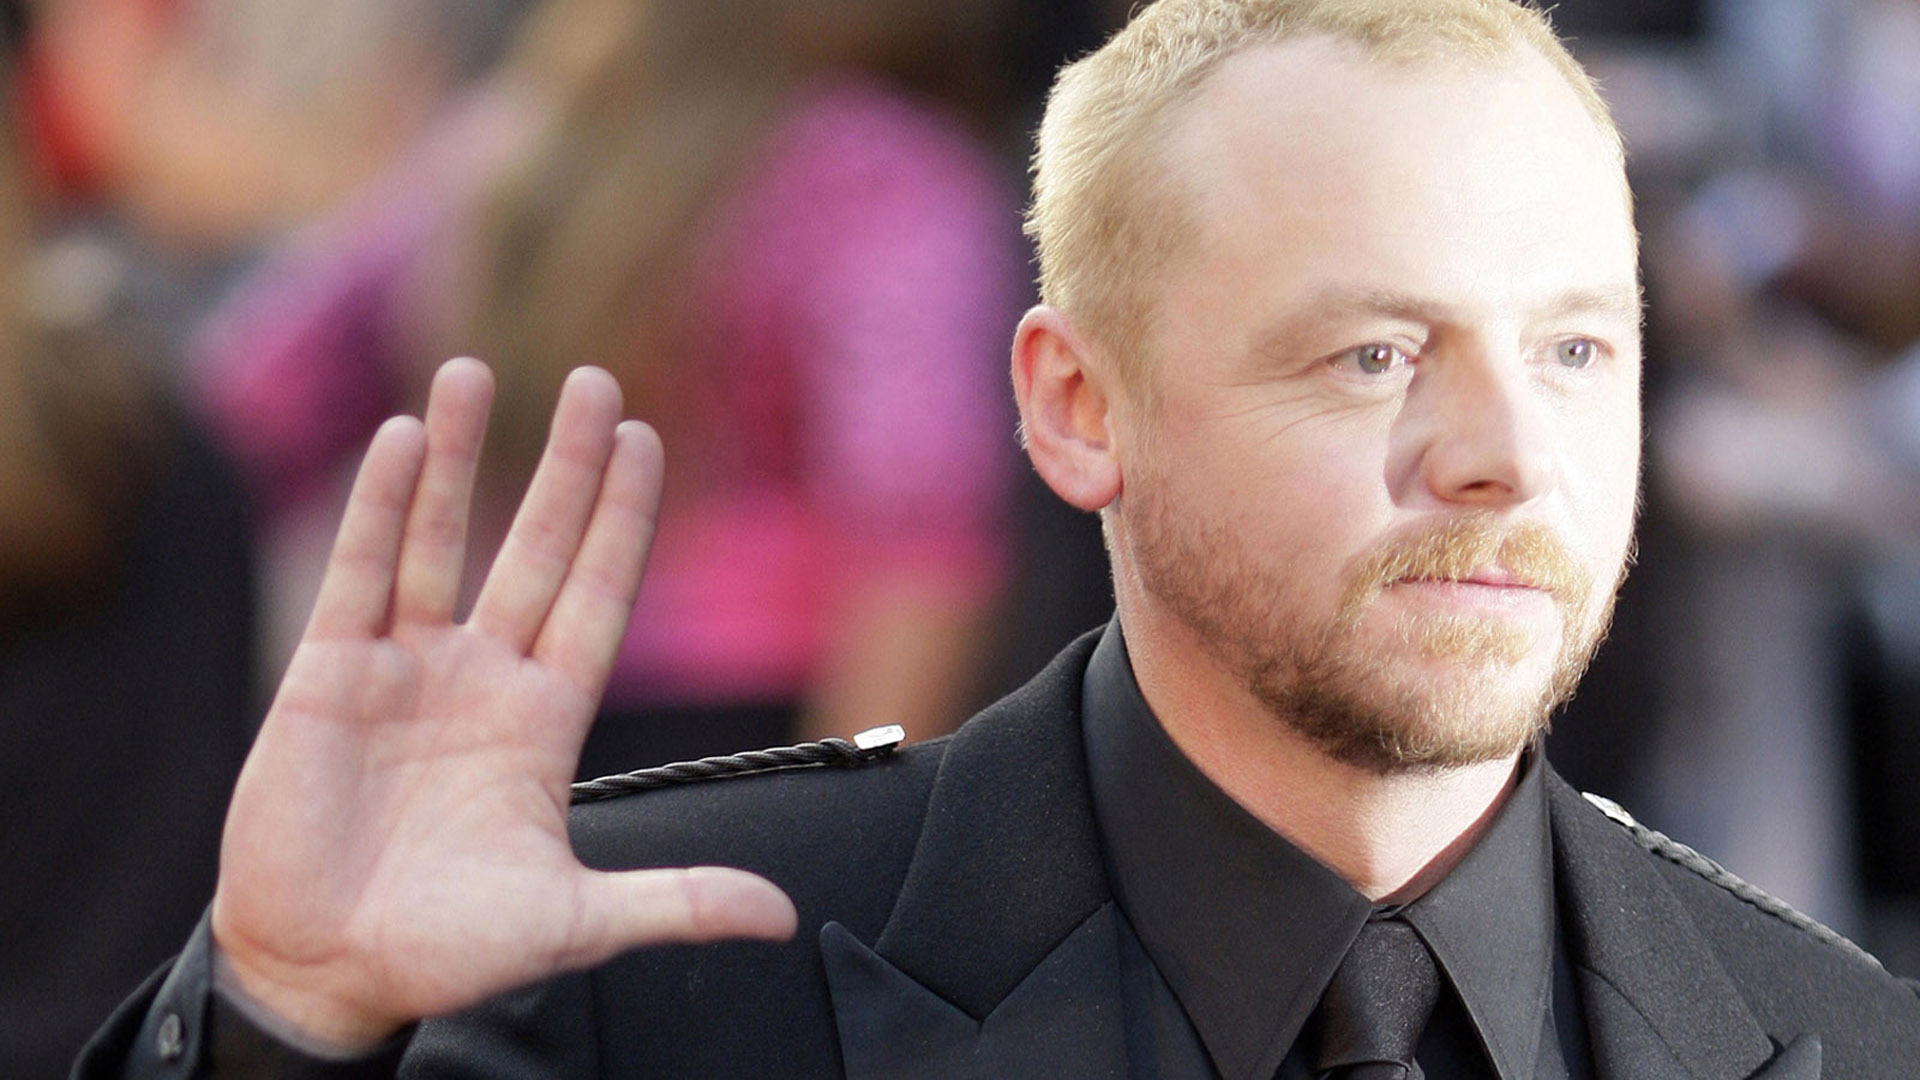 Simon Pegg. Star Trek 3 News Roundup